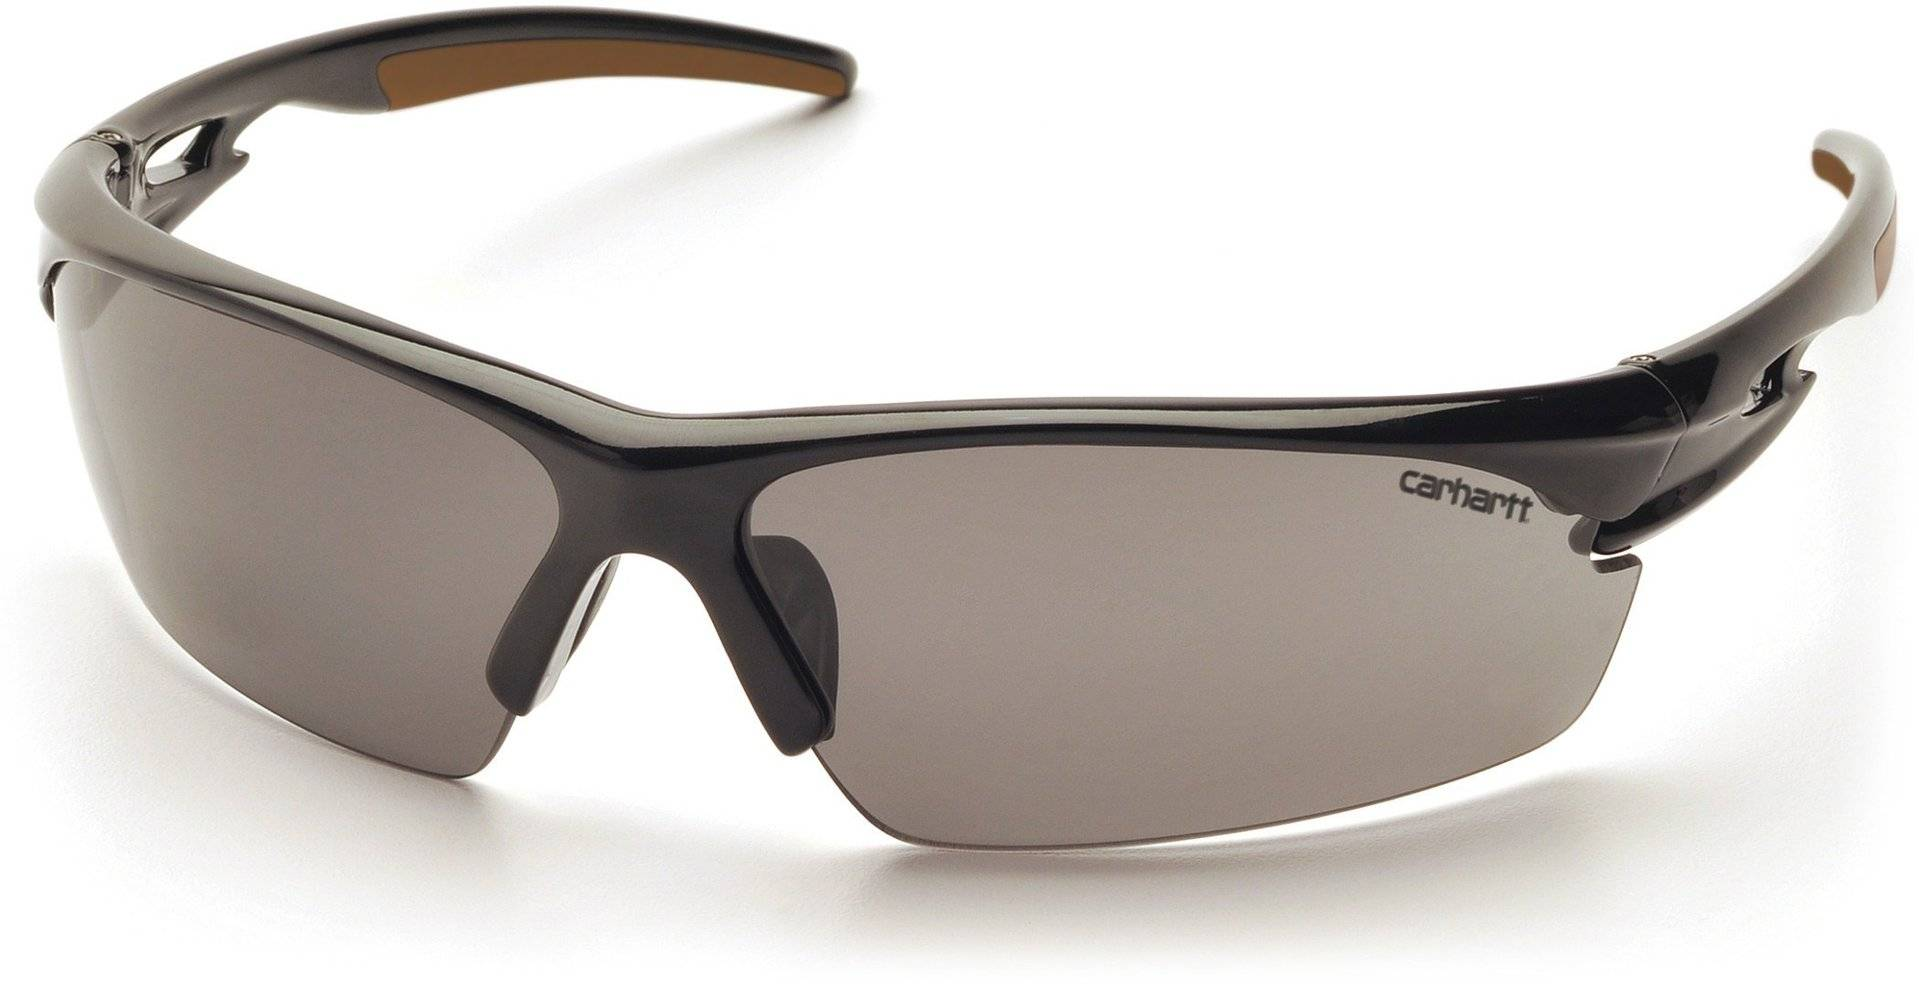 Carhartt Ironside Plus Safety Glasses Grey